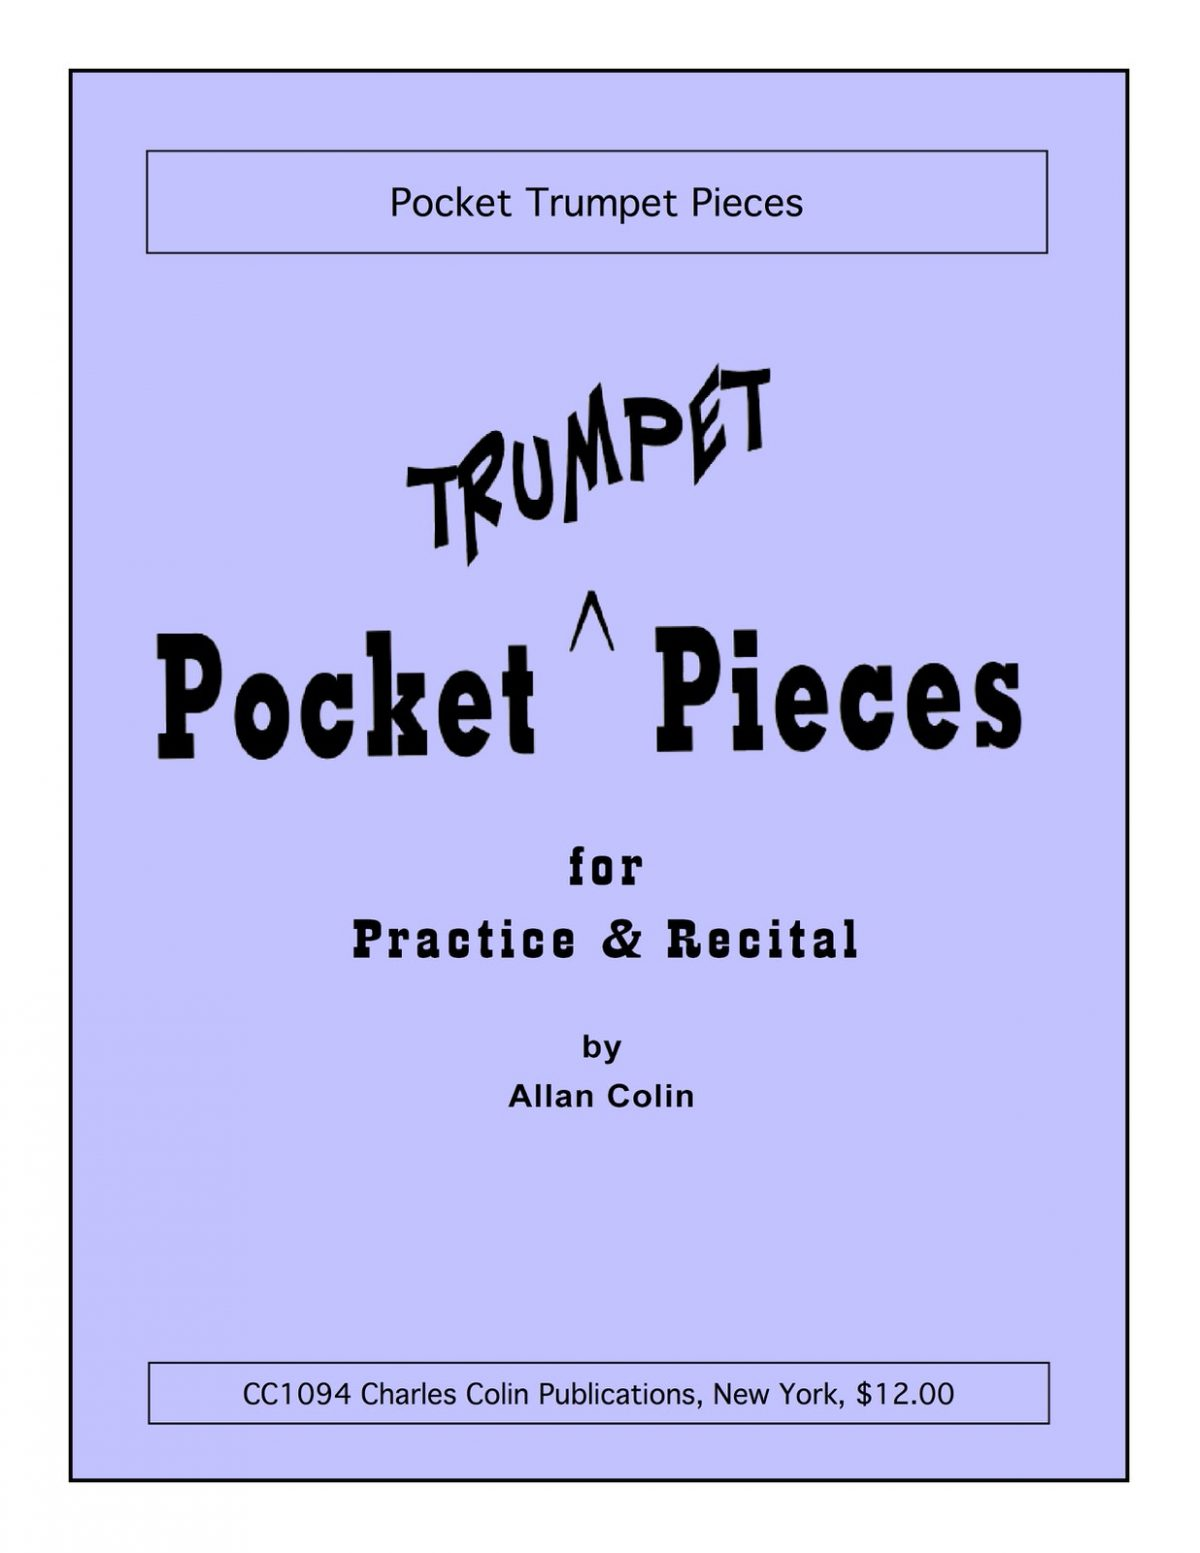 Colin, Allan, Pocket Trumpet Pieces-p01